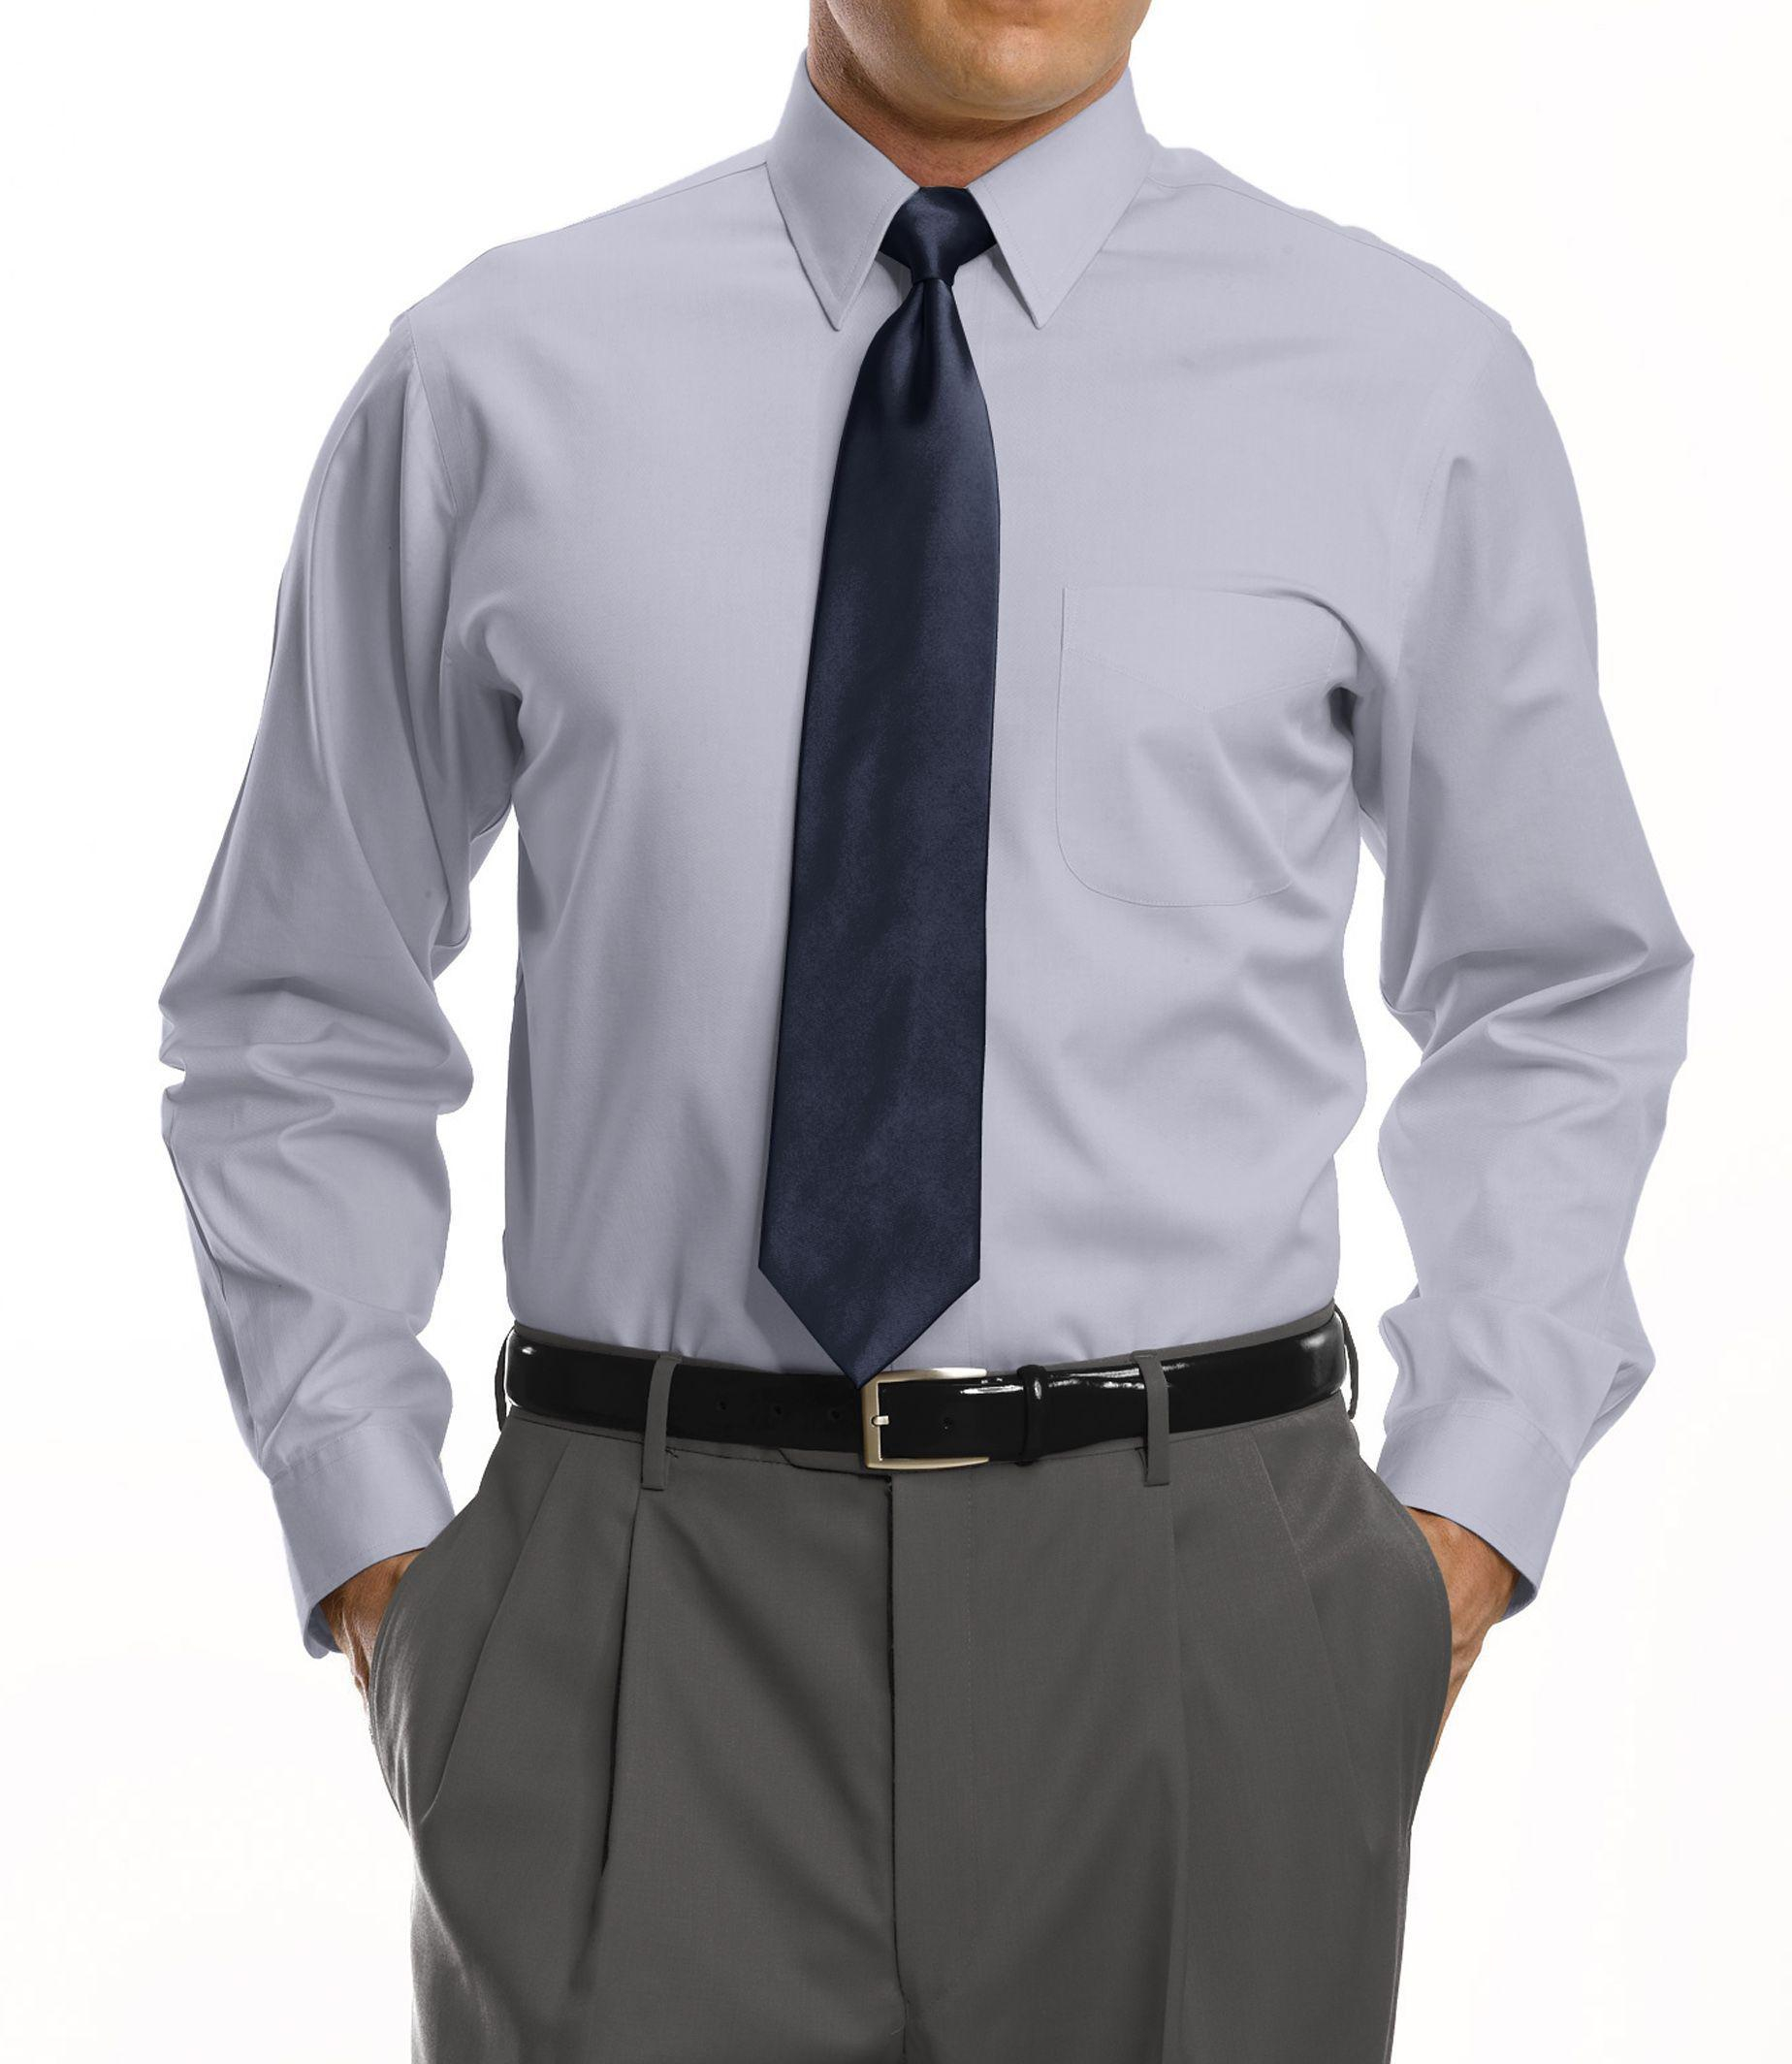 Jos a bank traveller collection tailored fit point for Tailored fit dress shirts